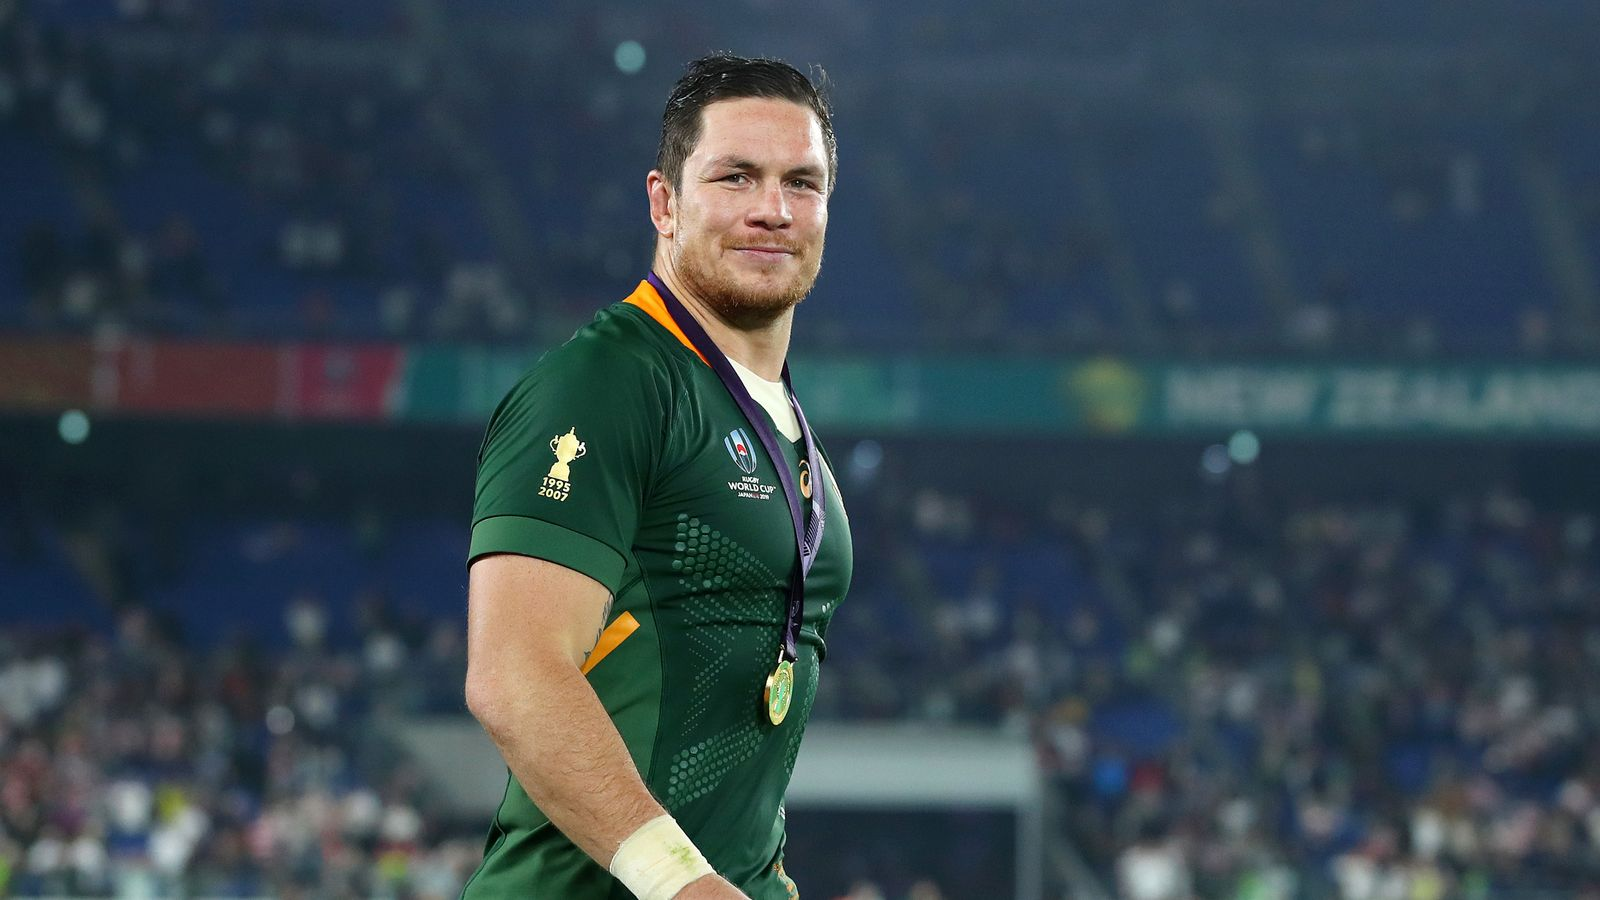 South Africa's Francois Louw retires from international rugby - Sky Sports